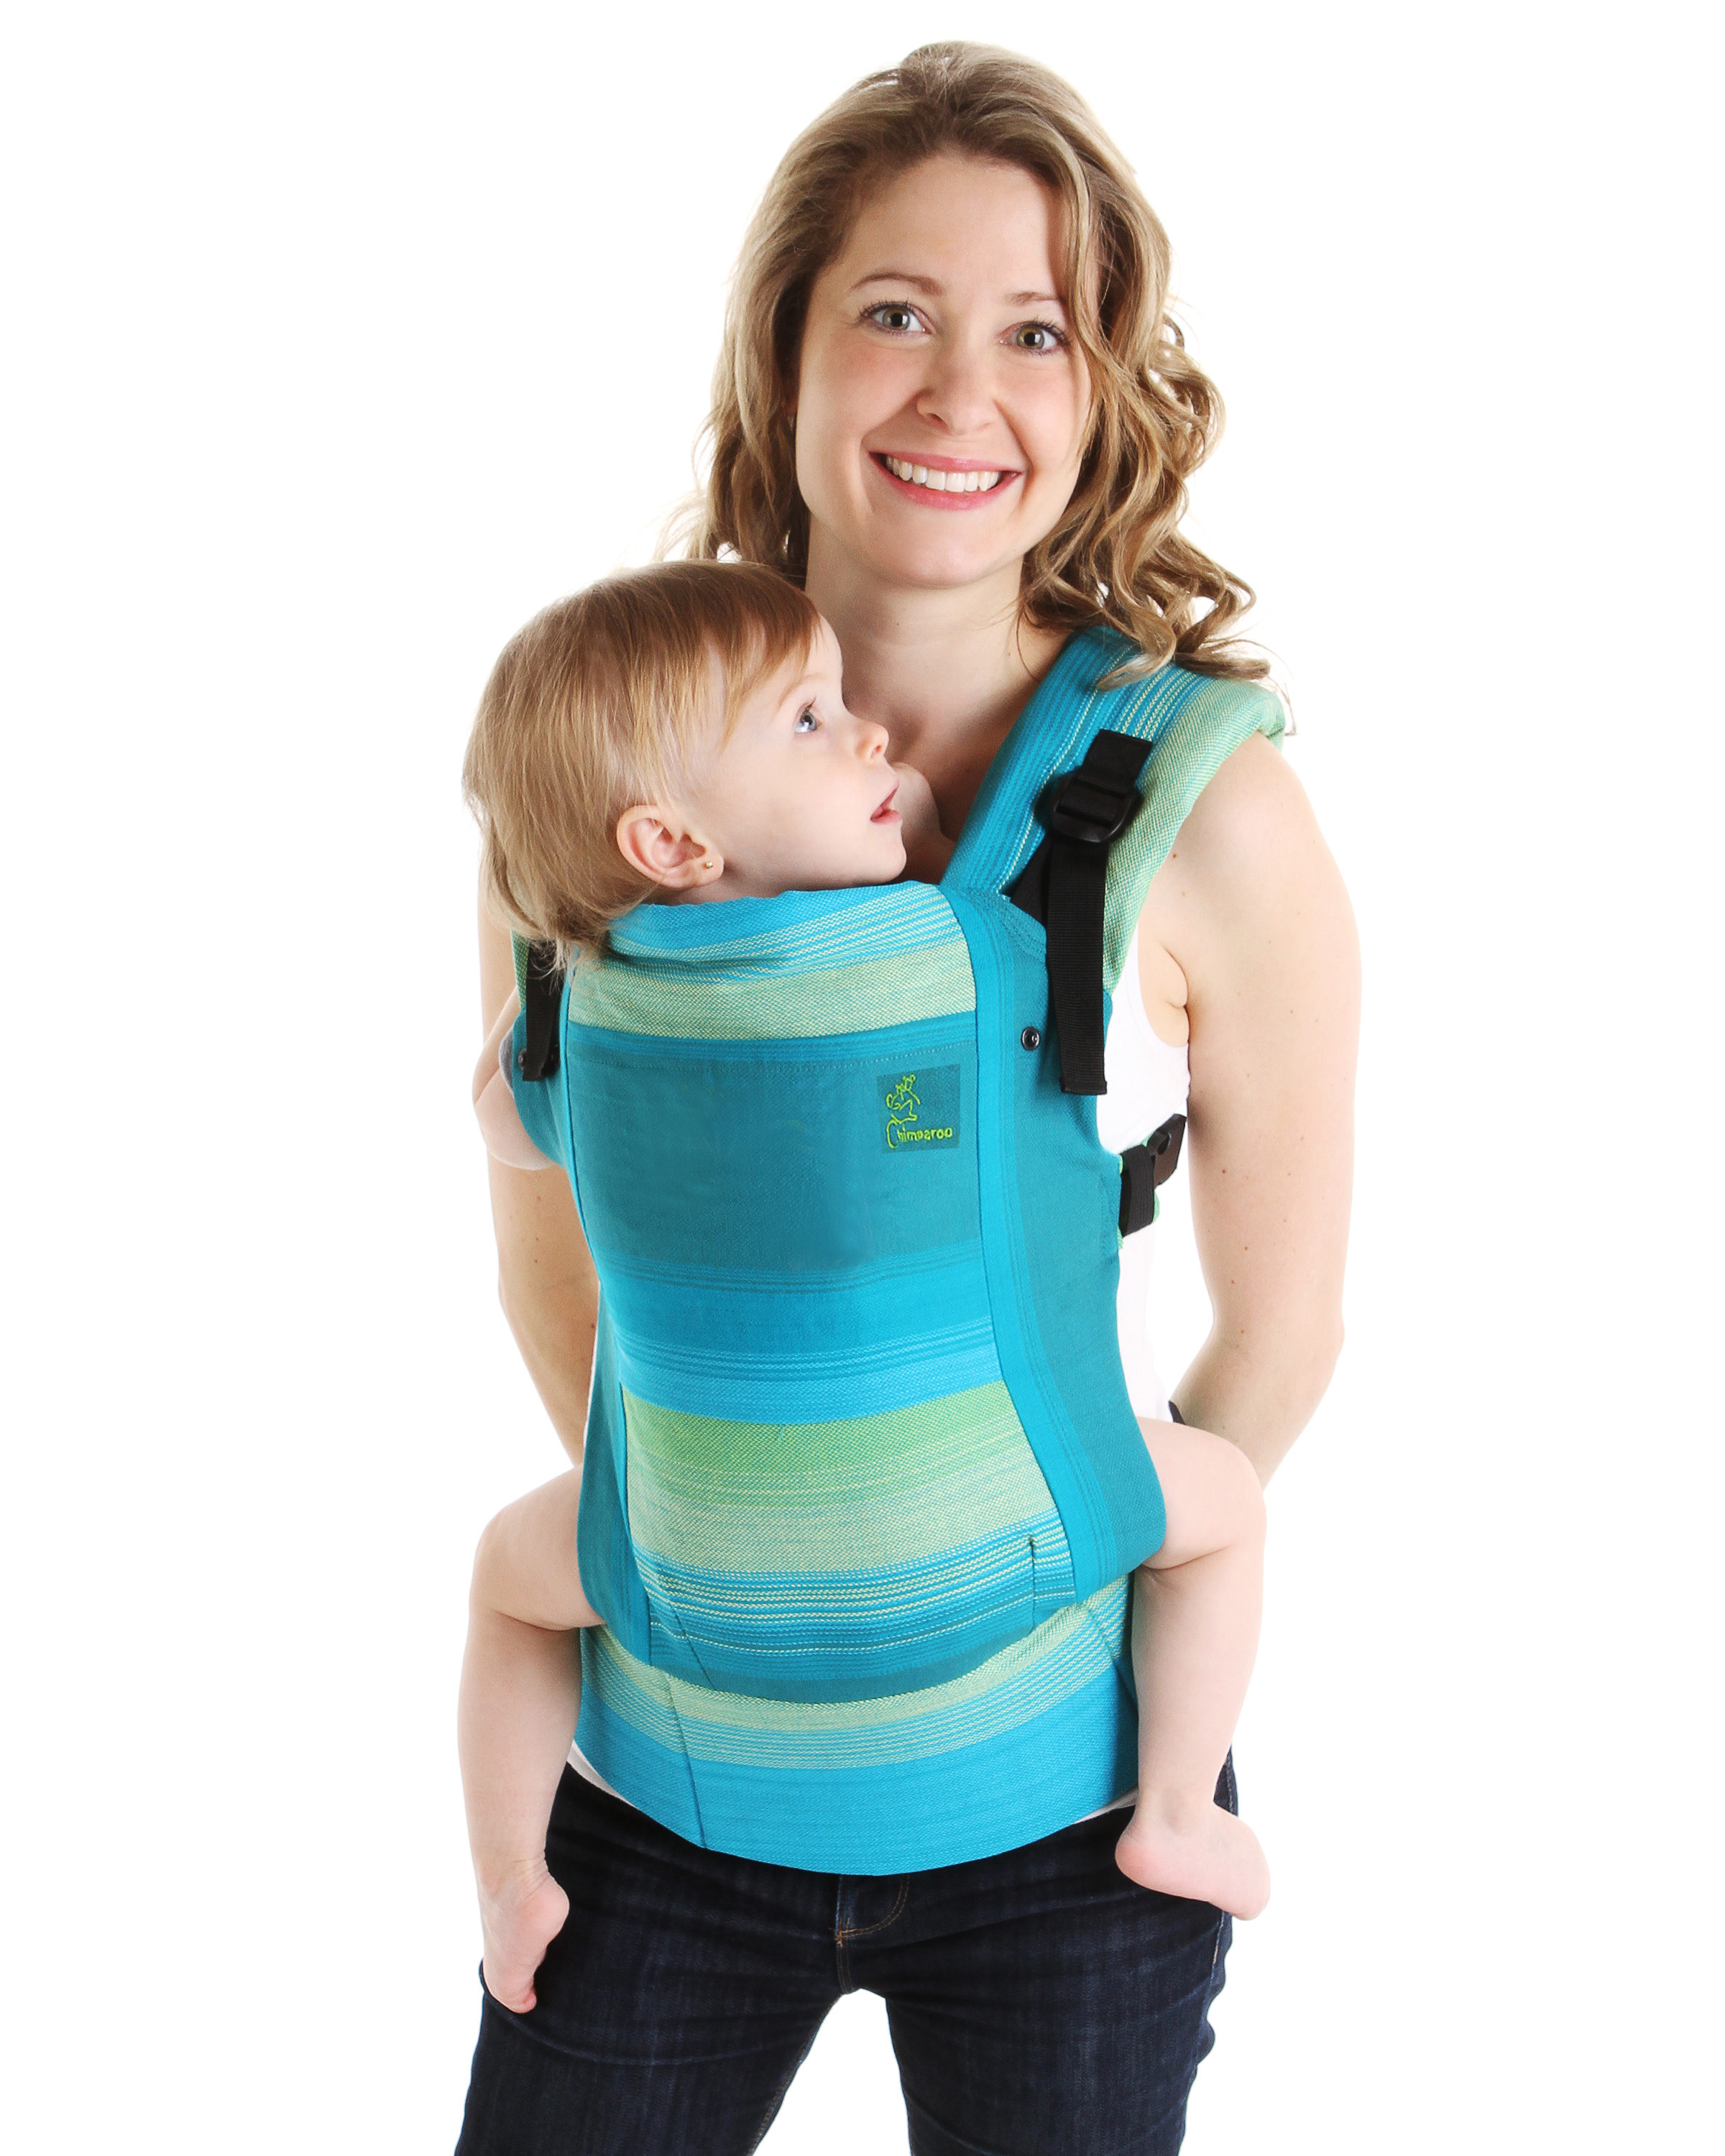 Infant Carrier Recalls Page 2